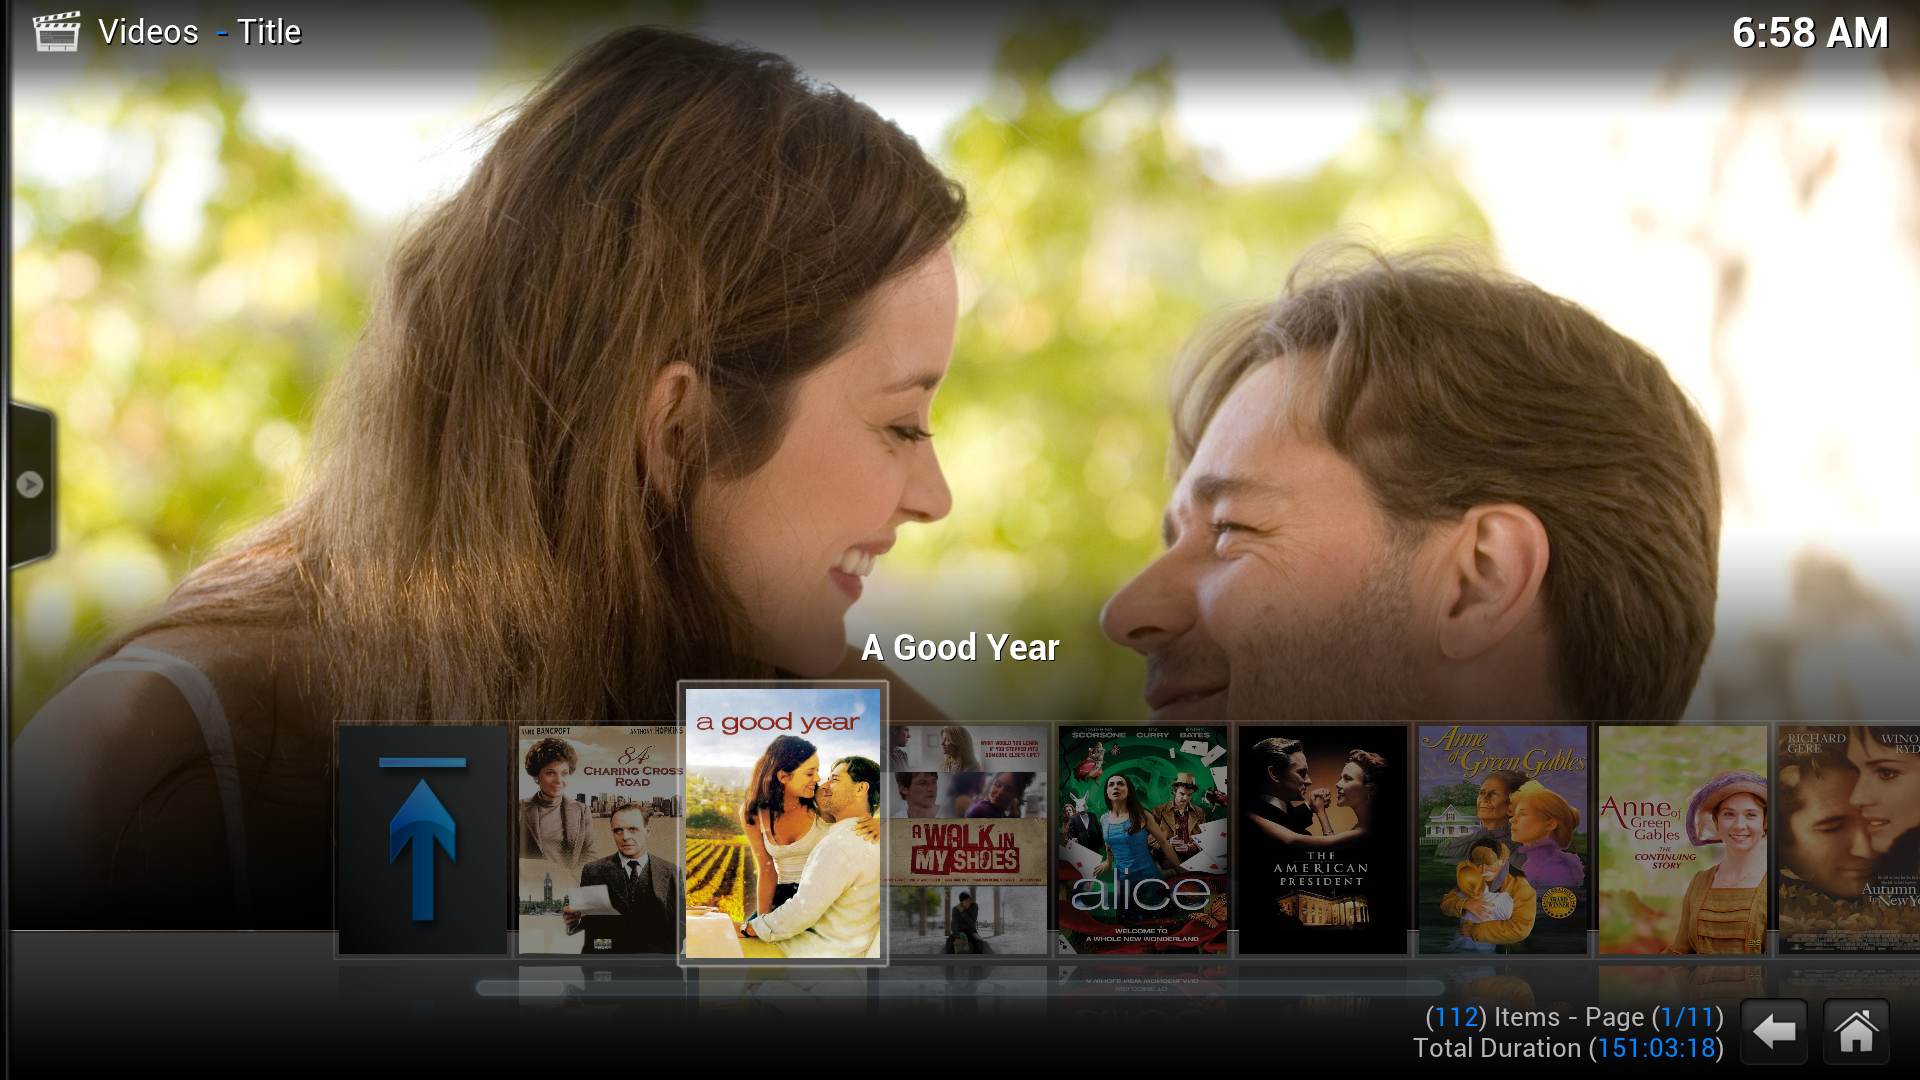 Power Up Your XBMC Installation with These Awesome Add-Ons